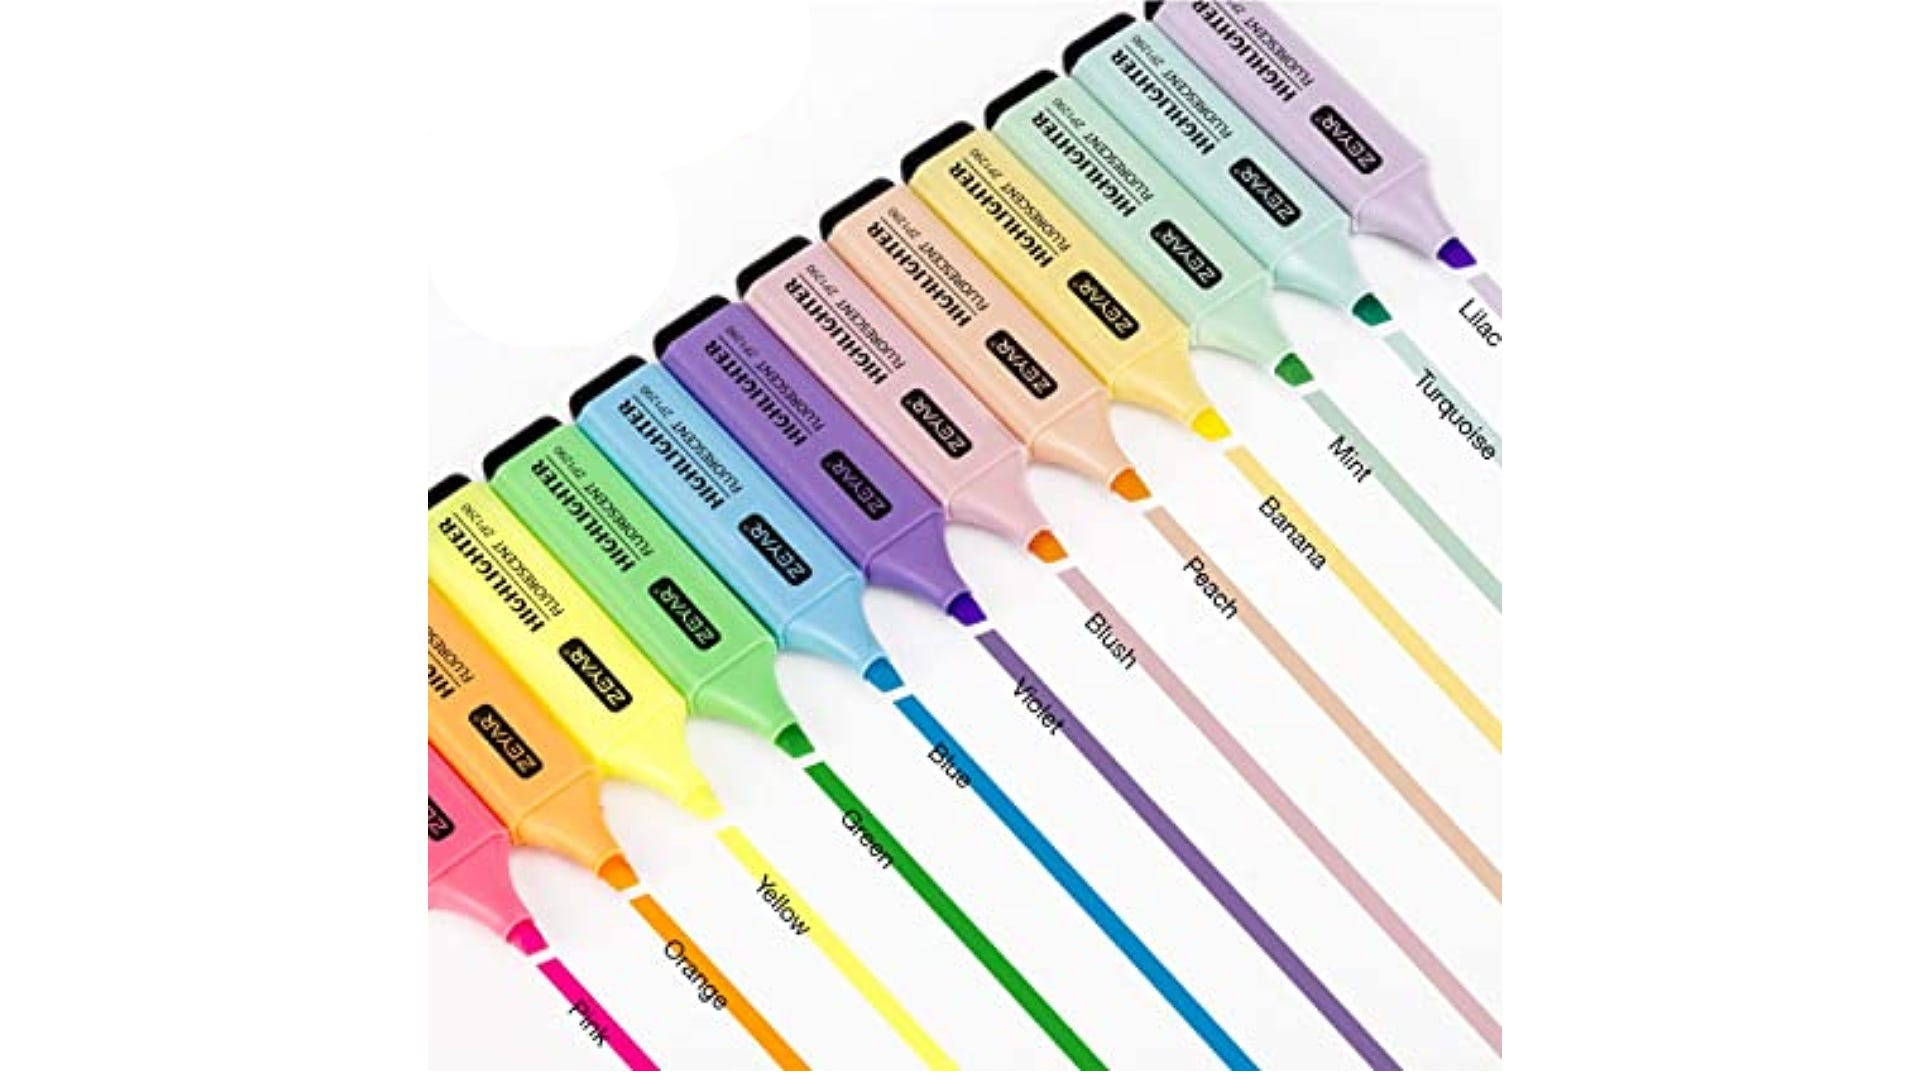 flat bodies highlighters in various colors with chiseled tips drawing lines